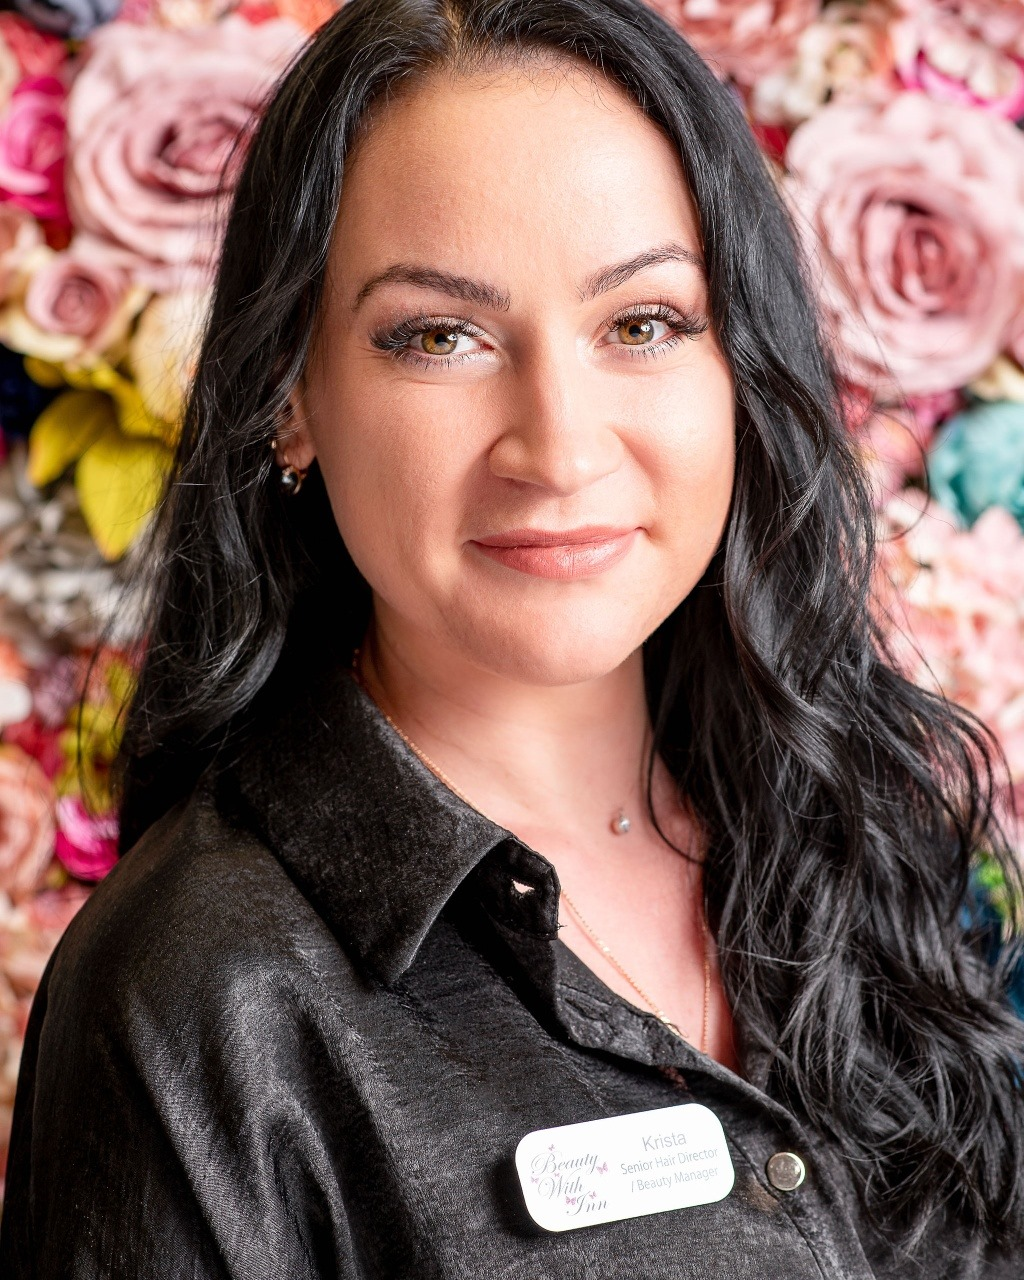 Krista senior women's stylist and Beauty and Hair Manager